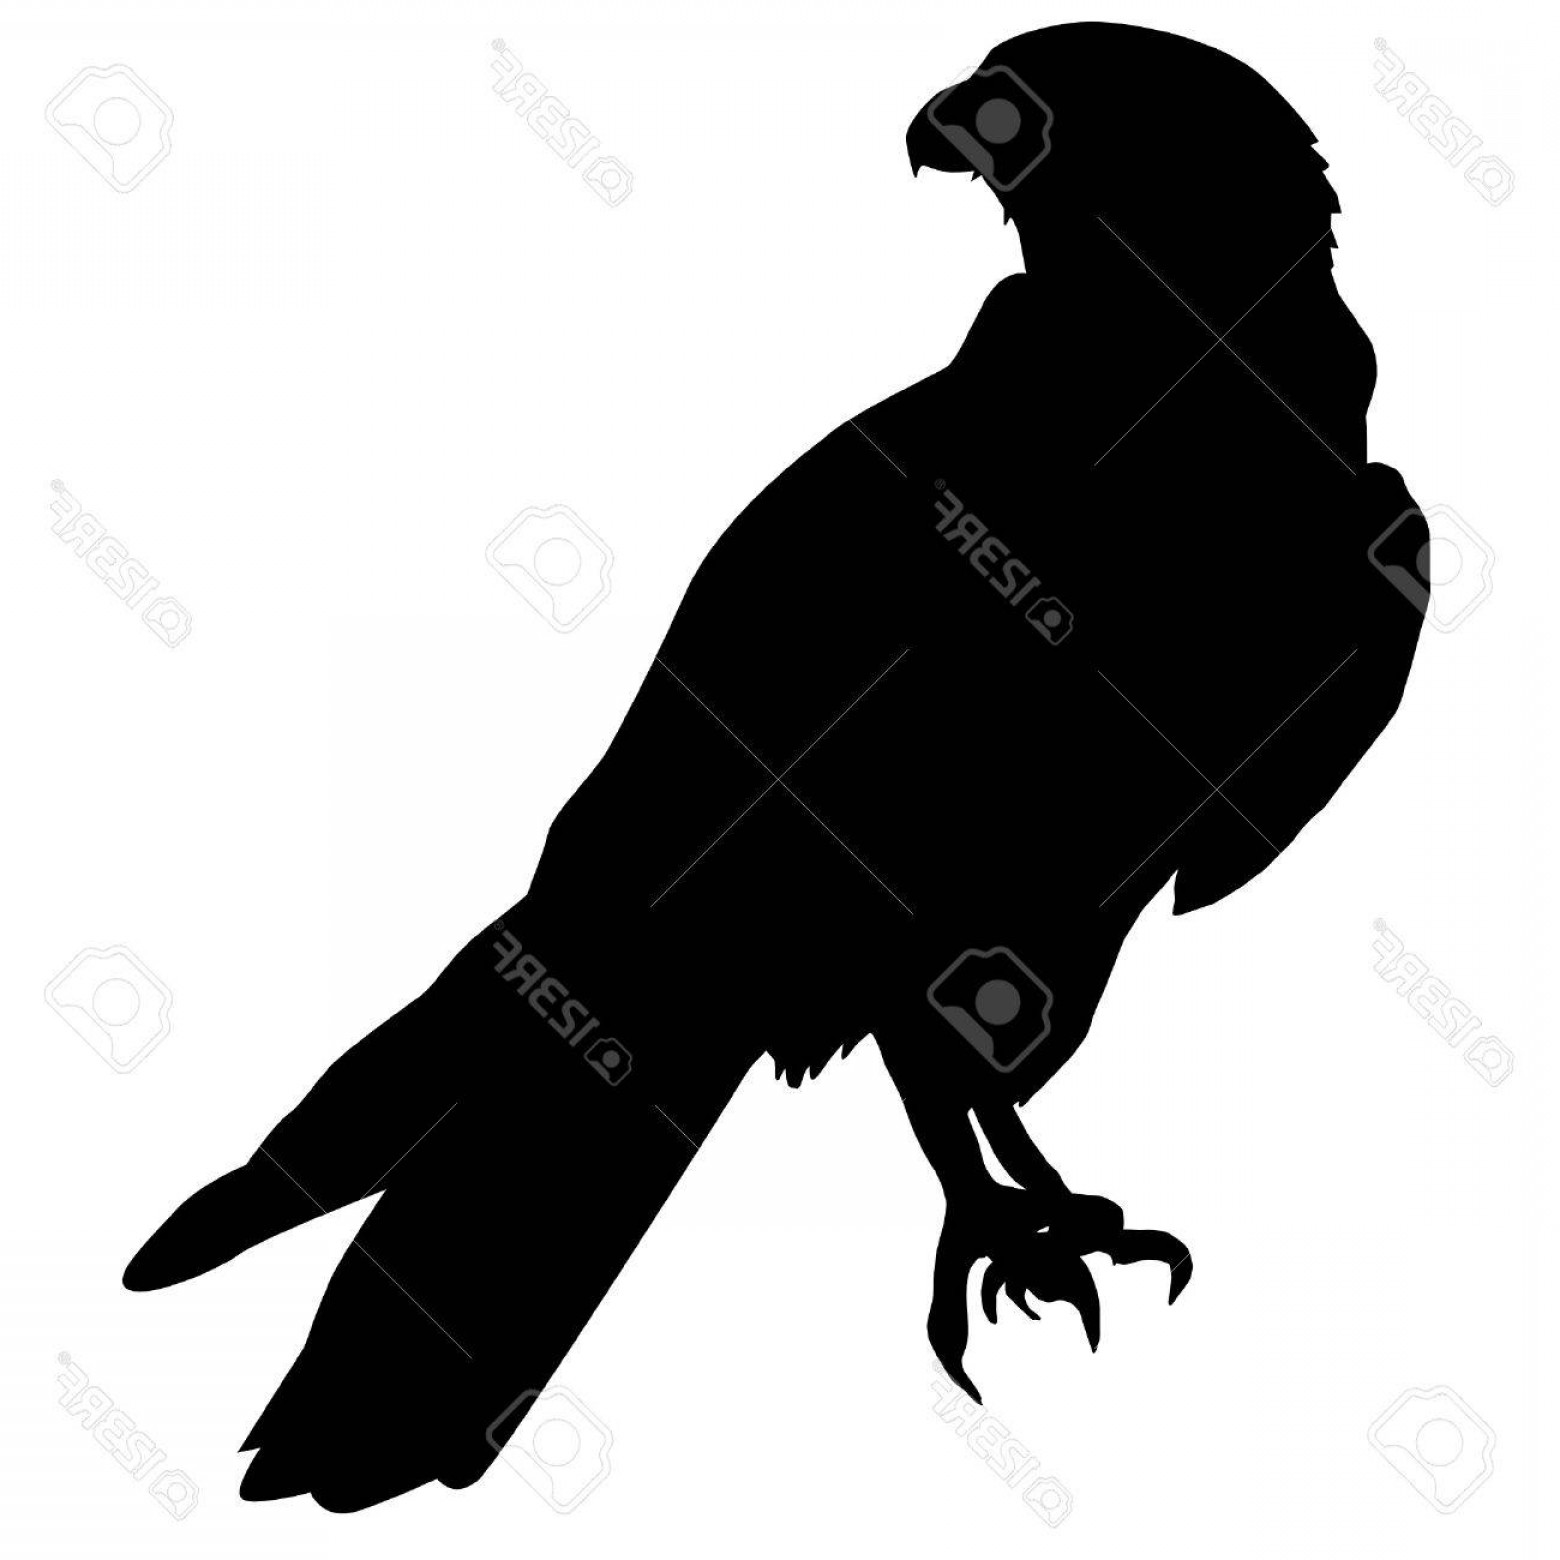 Falcon Silhouette Vector: Photoillustration In Style Of Black Silhouette Of Falcon